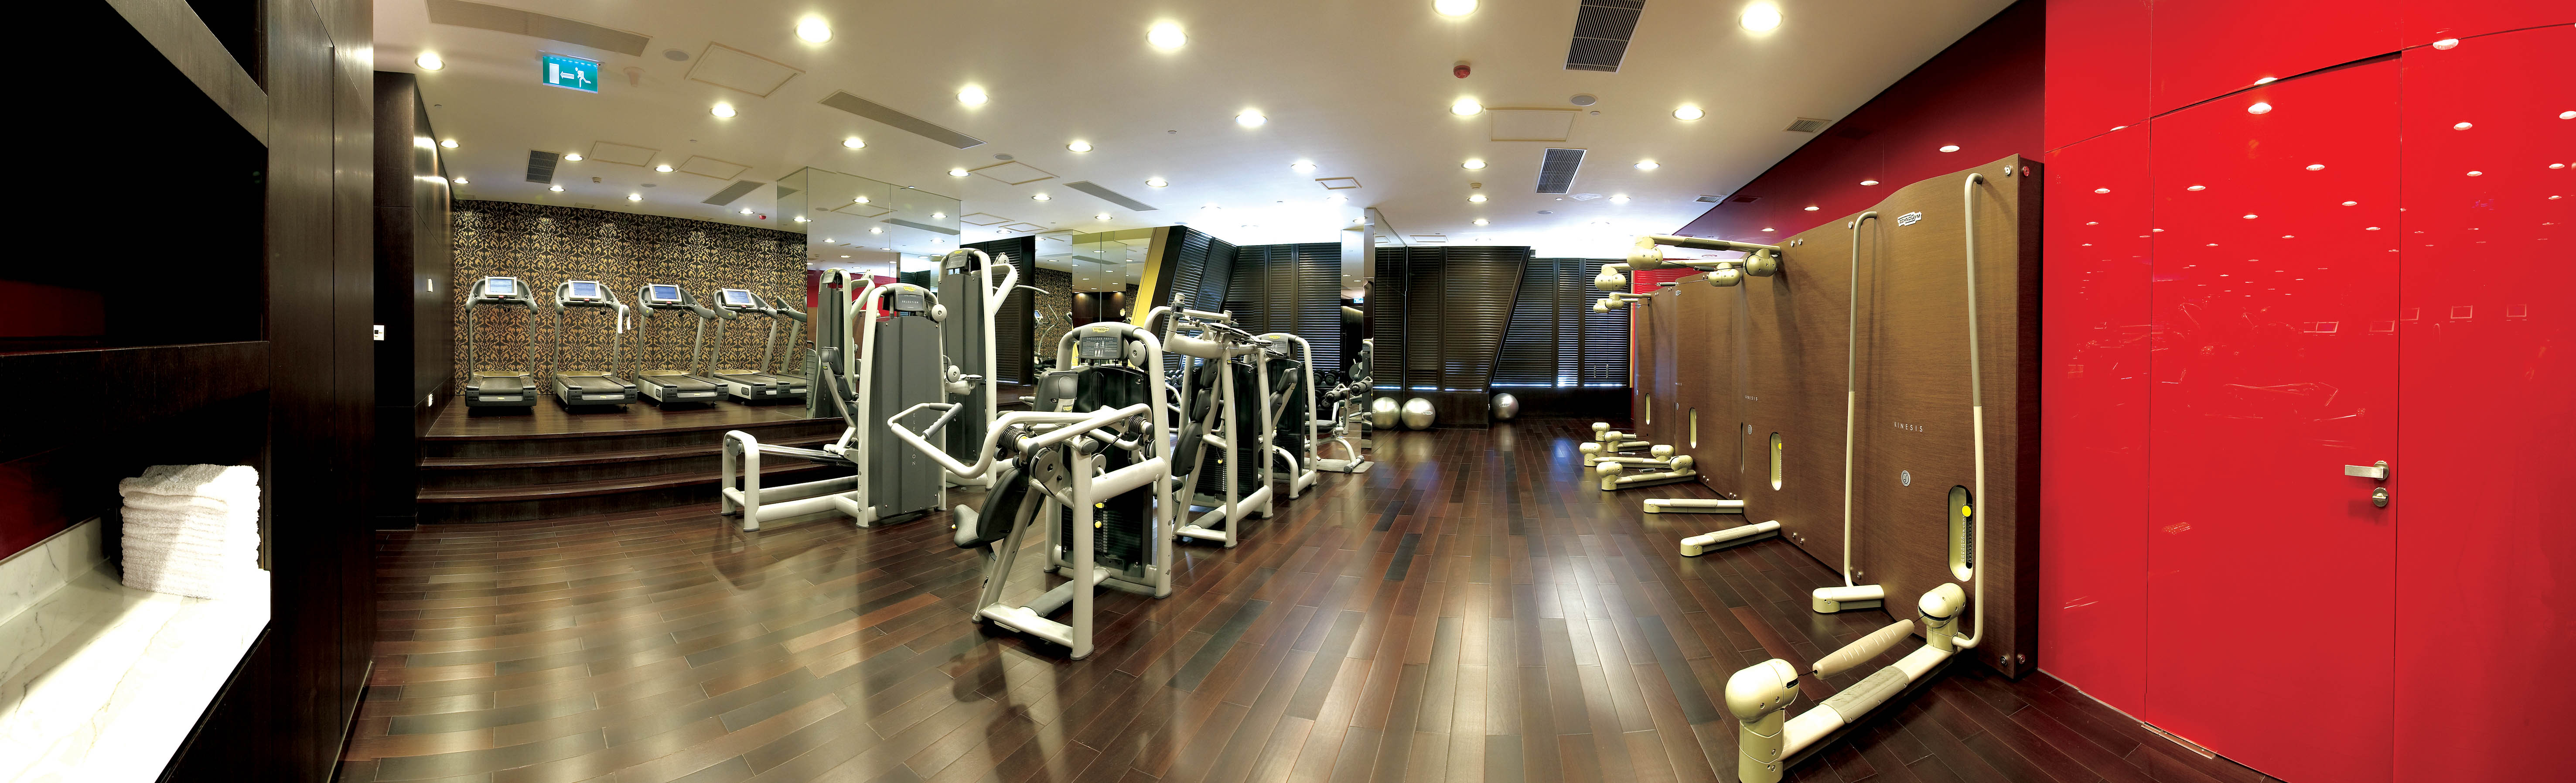 Grand Lisboa Hotel_Fitness Center